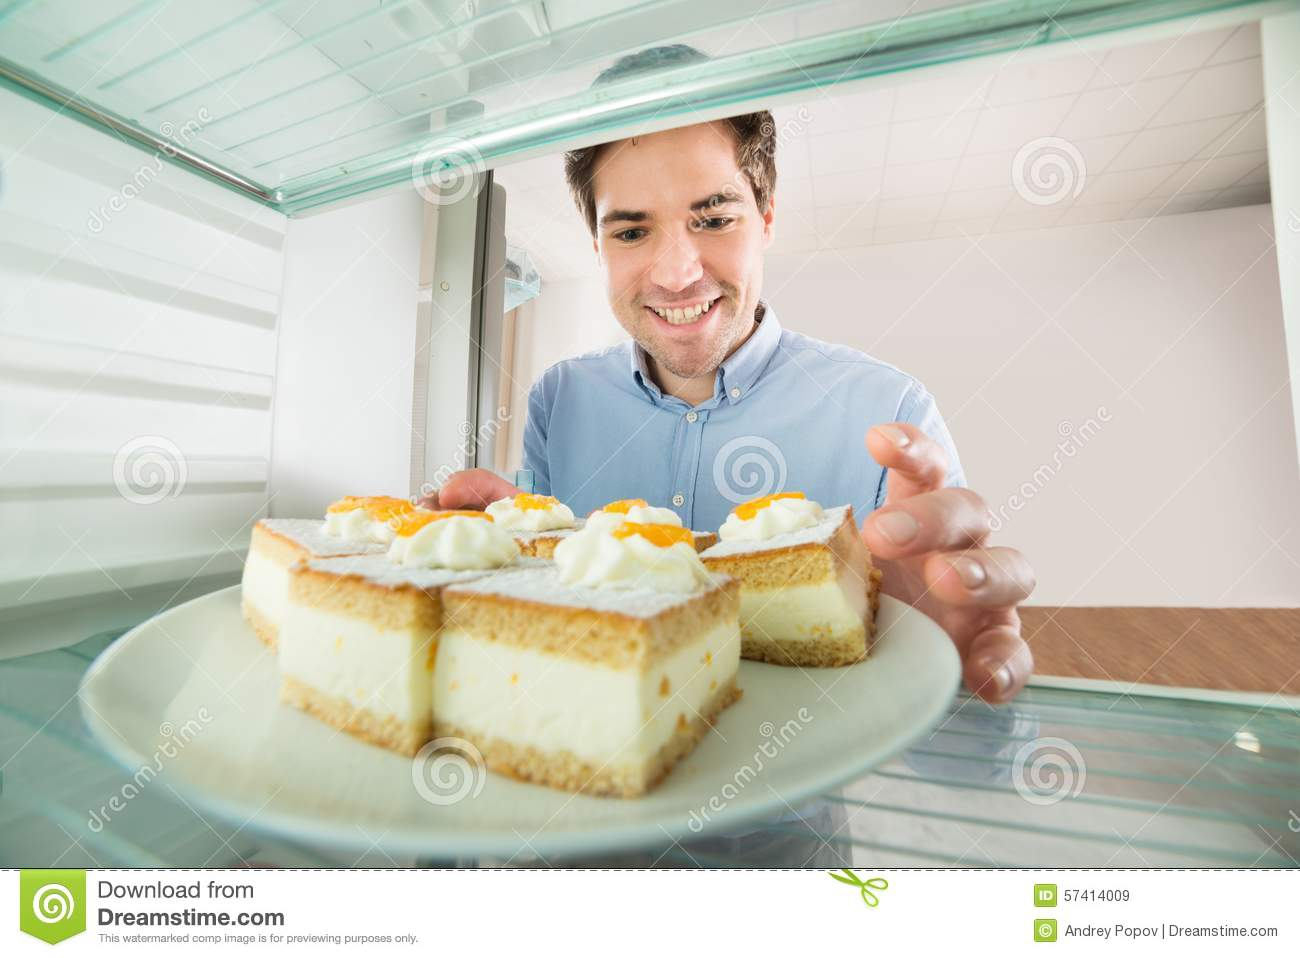 Handsome Man With Cake Ideas and Designs